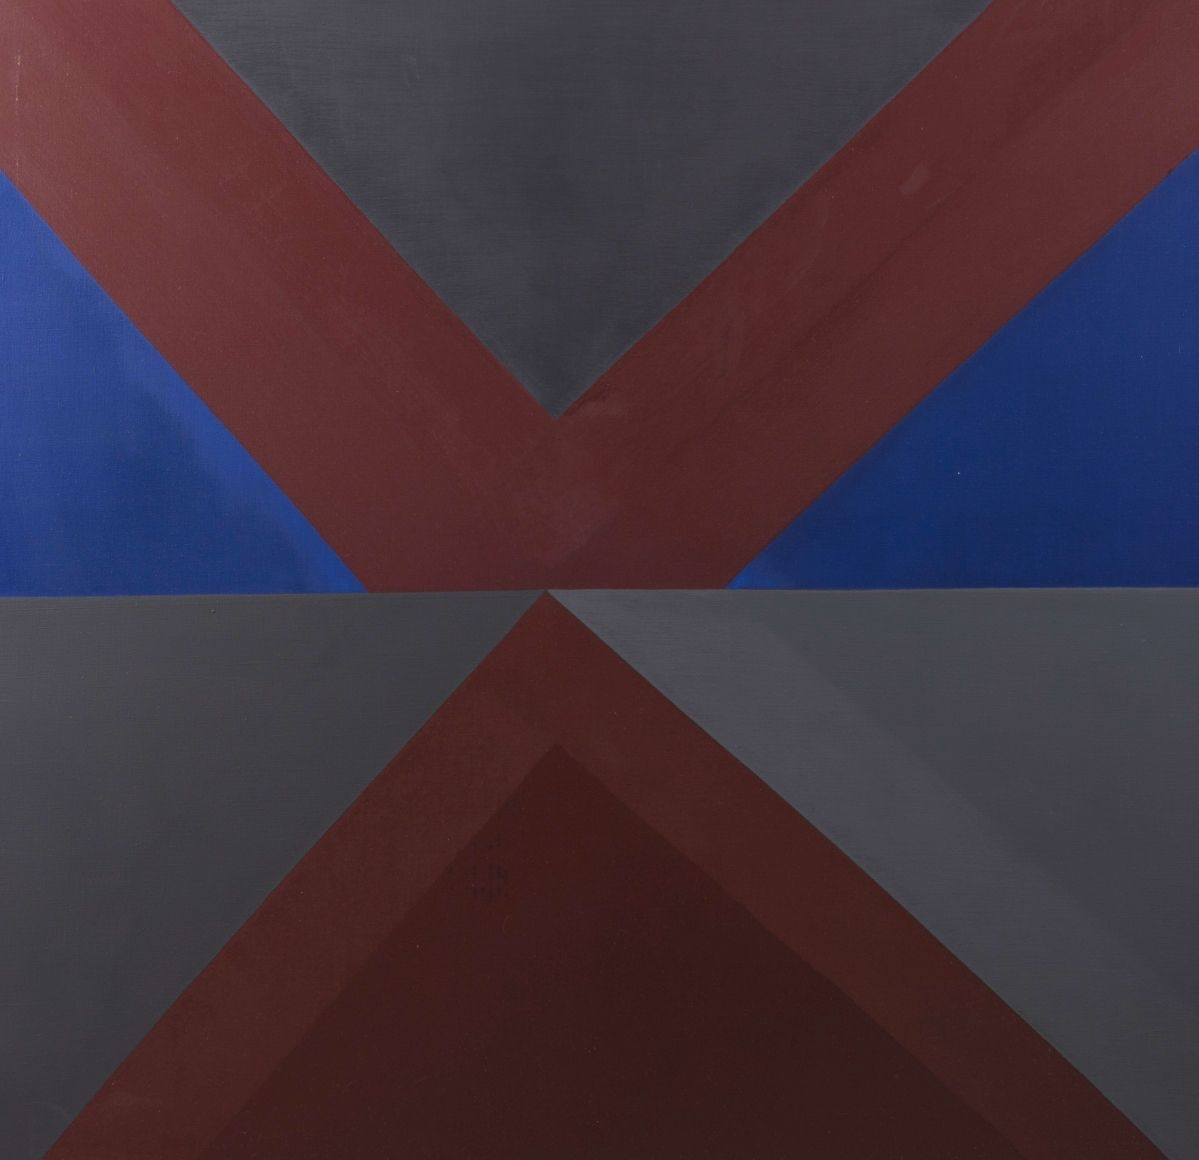 Felrath Hines, Untitled #2, 1978, Oil on canvas, 46 x 48 inches. Canvas divided horizontally with red, blue and grey geometric triangles and shapes. Felrath Hines worked to create universal visual idioms from a place of complex personal experience. His figurative and cubist-style artwork morphed into soft-edged organic abstracts as he grappled with hues in his chosen oil medium.